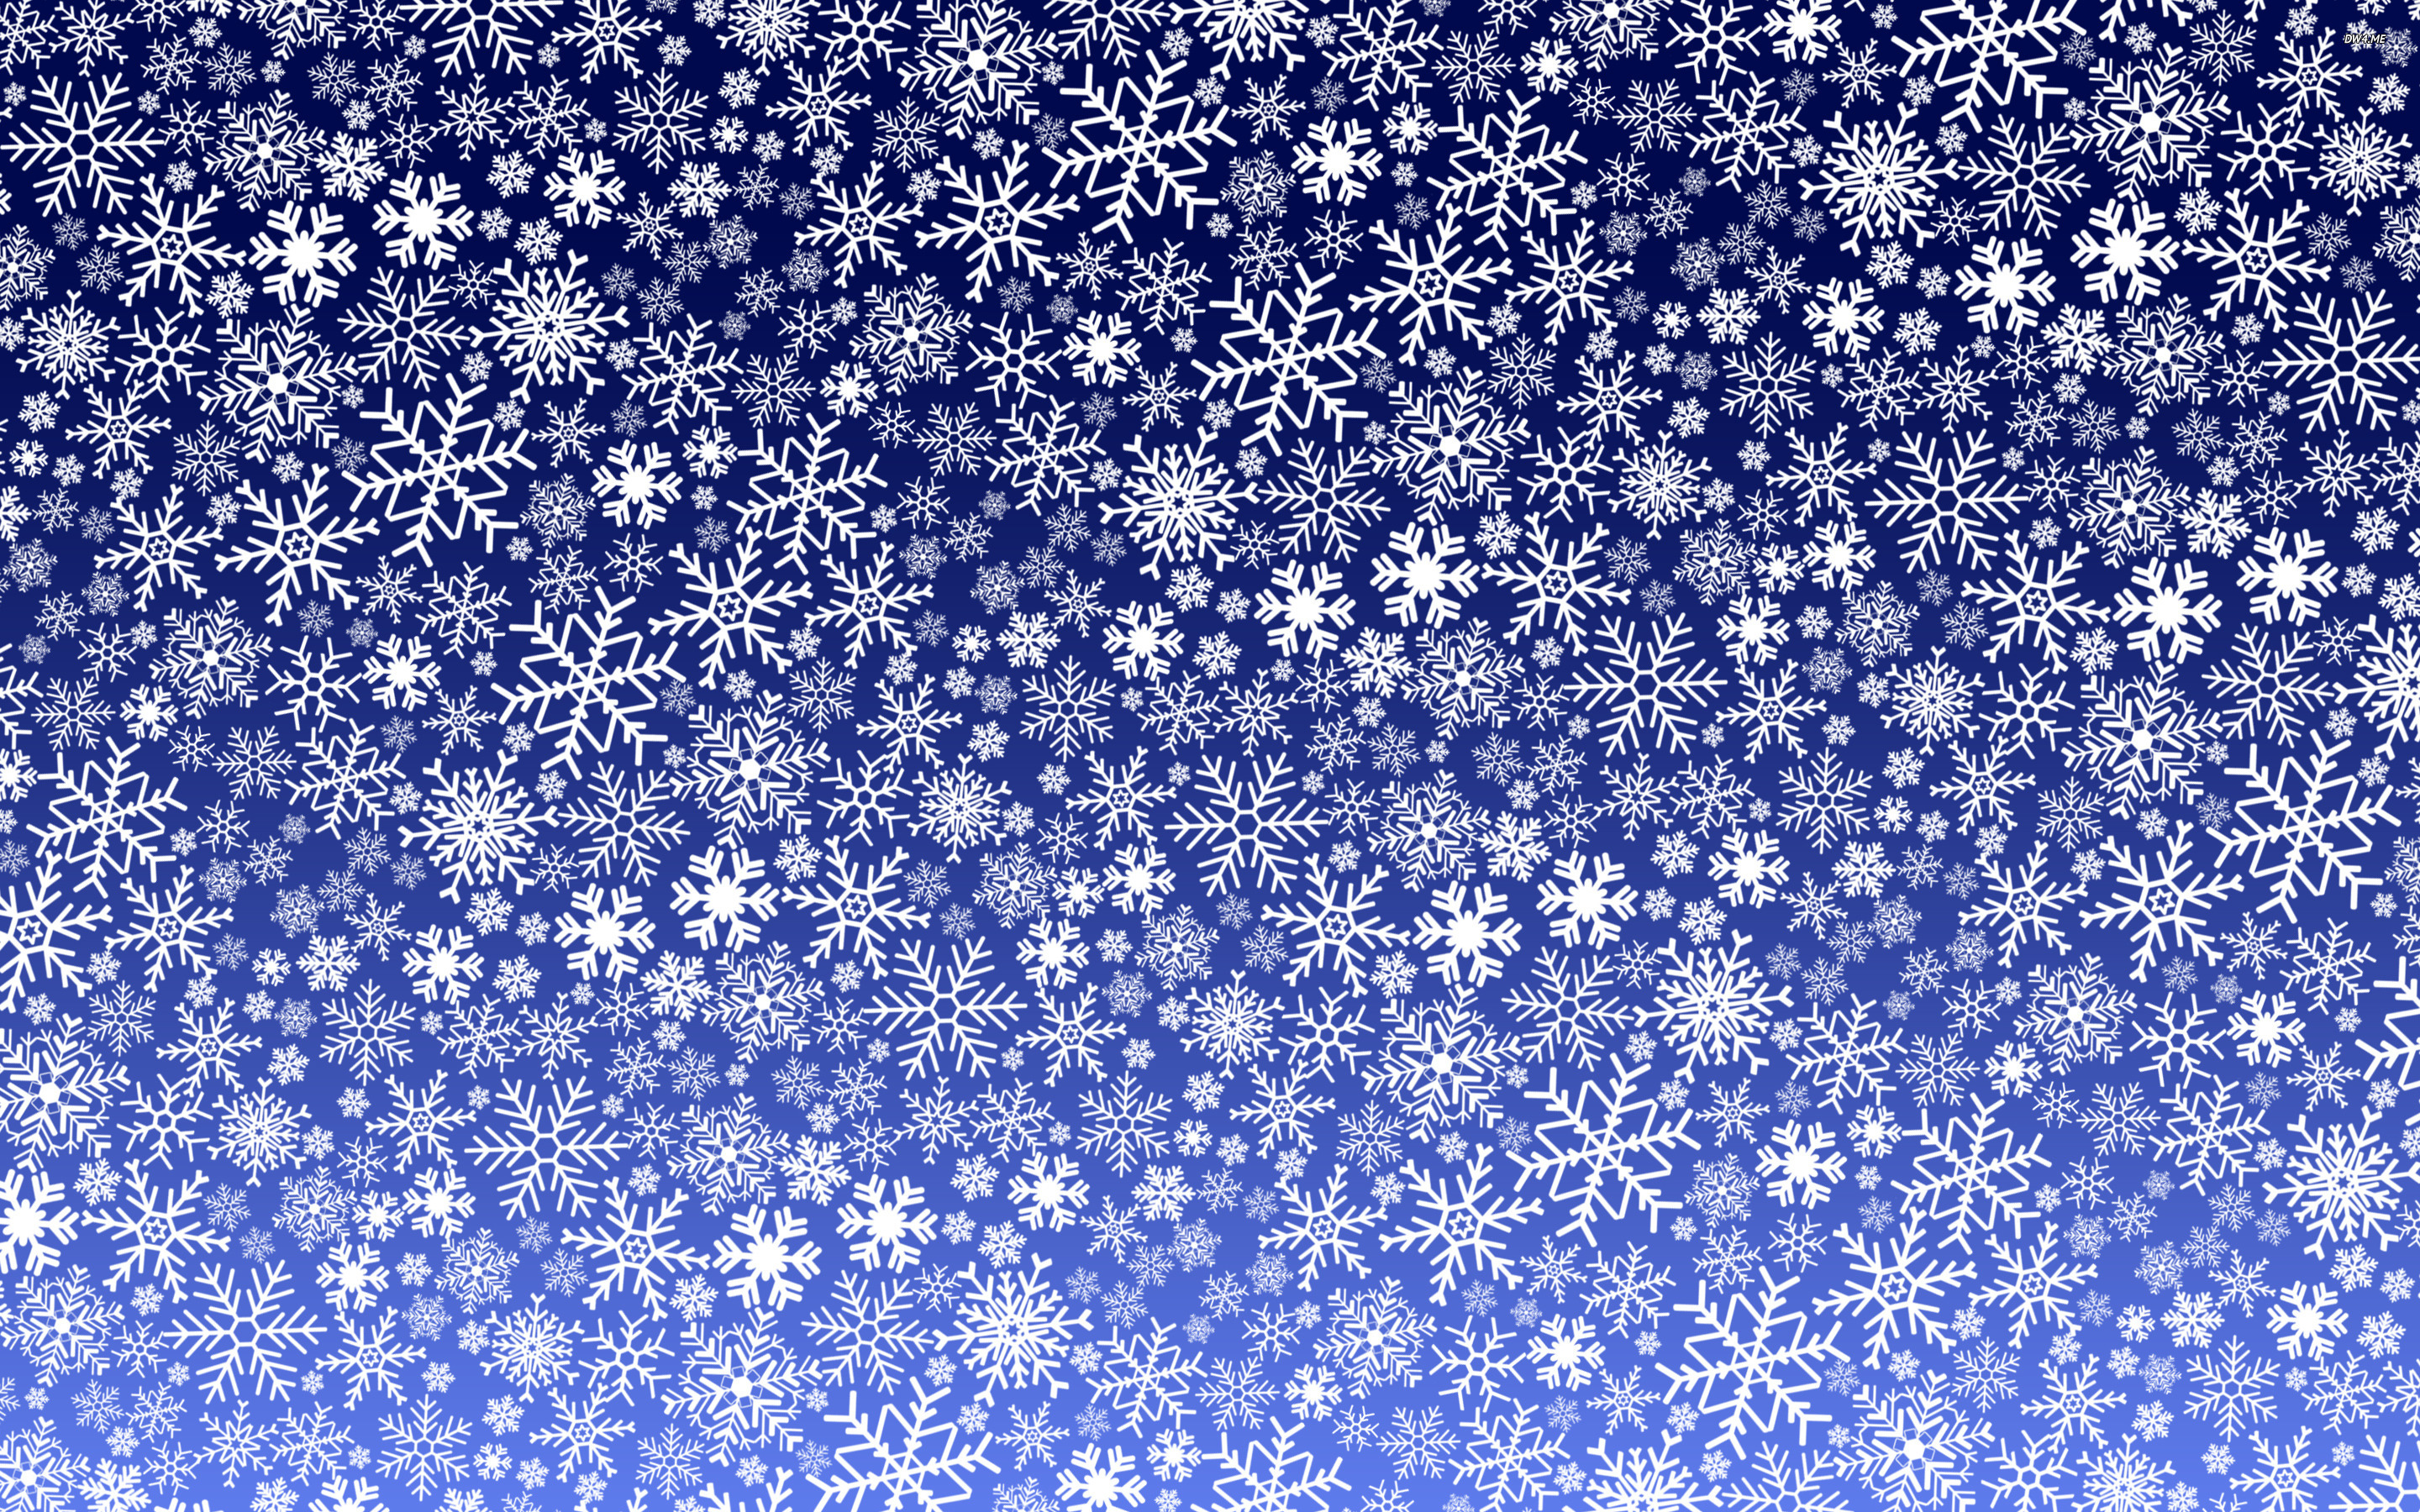 mixed snowflake hd backgrounds wallpaper #1631